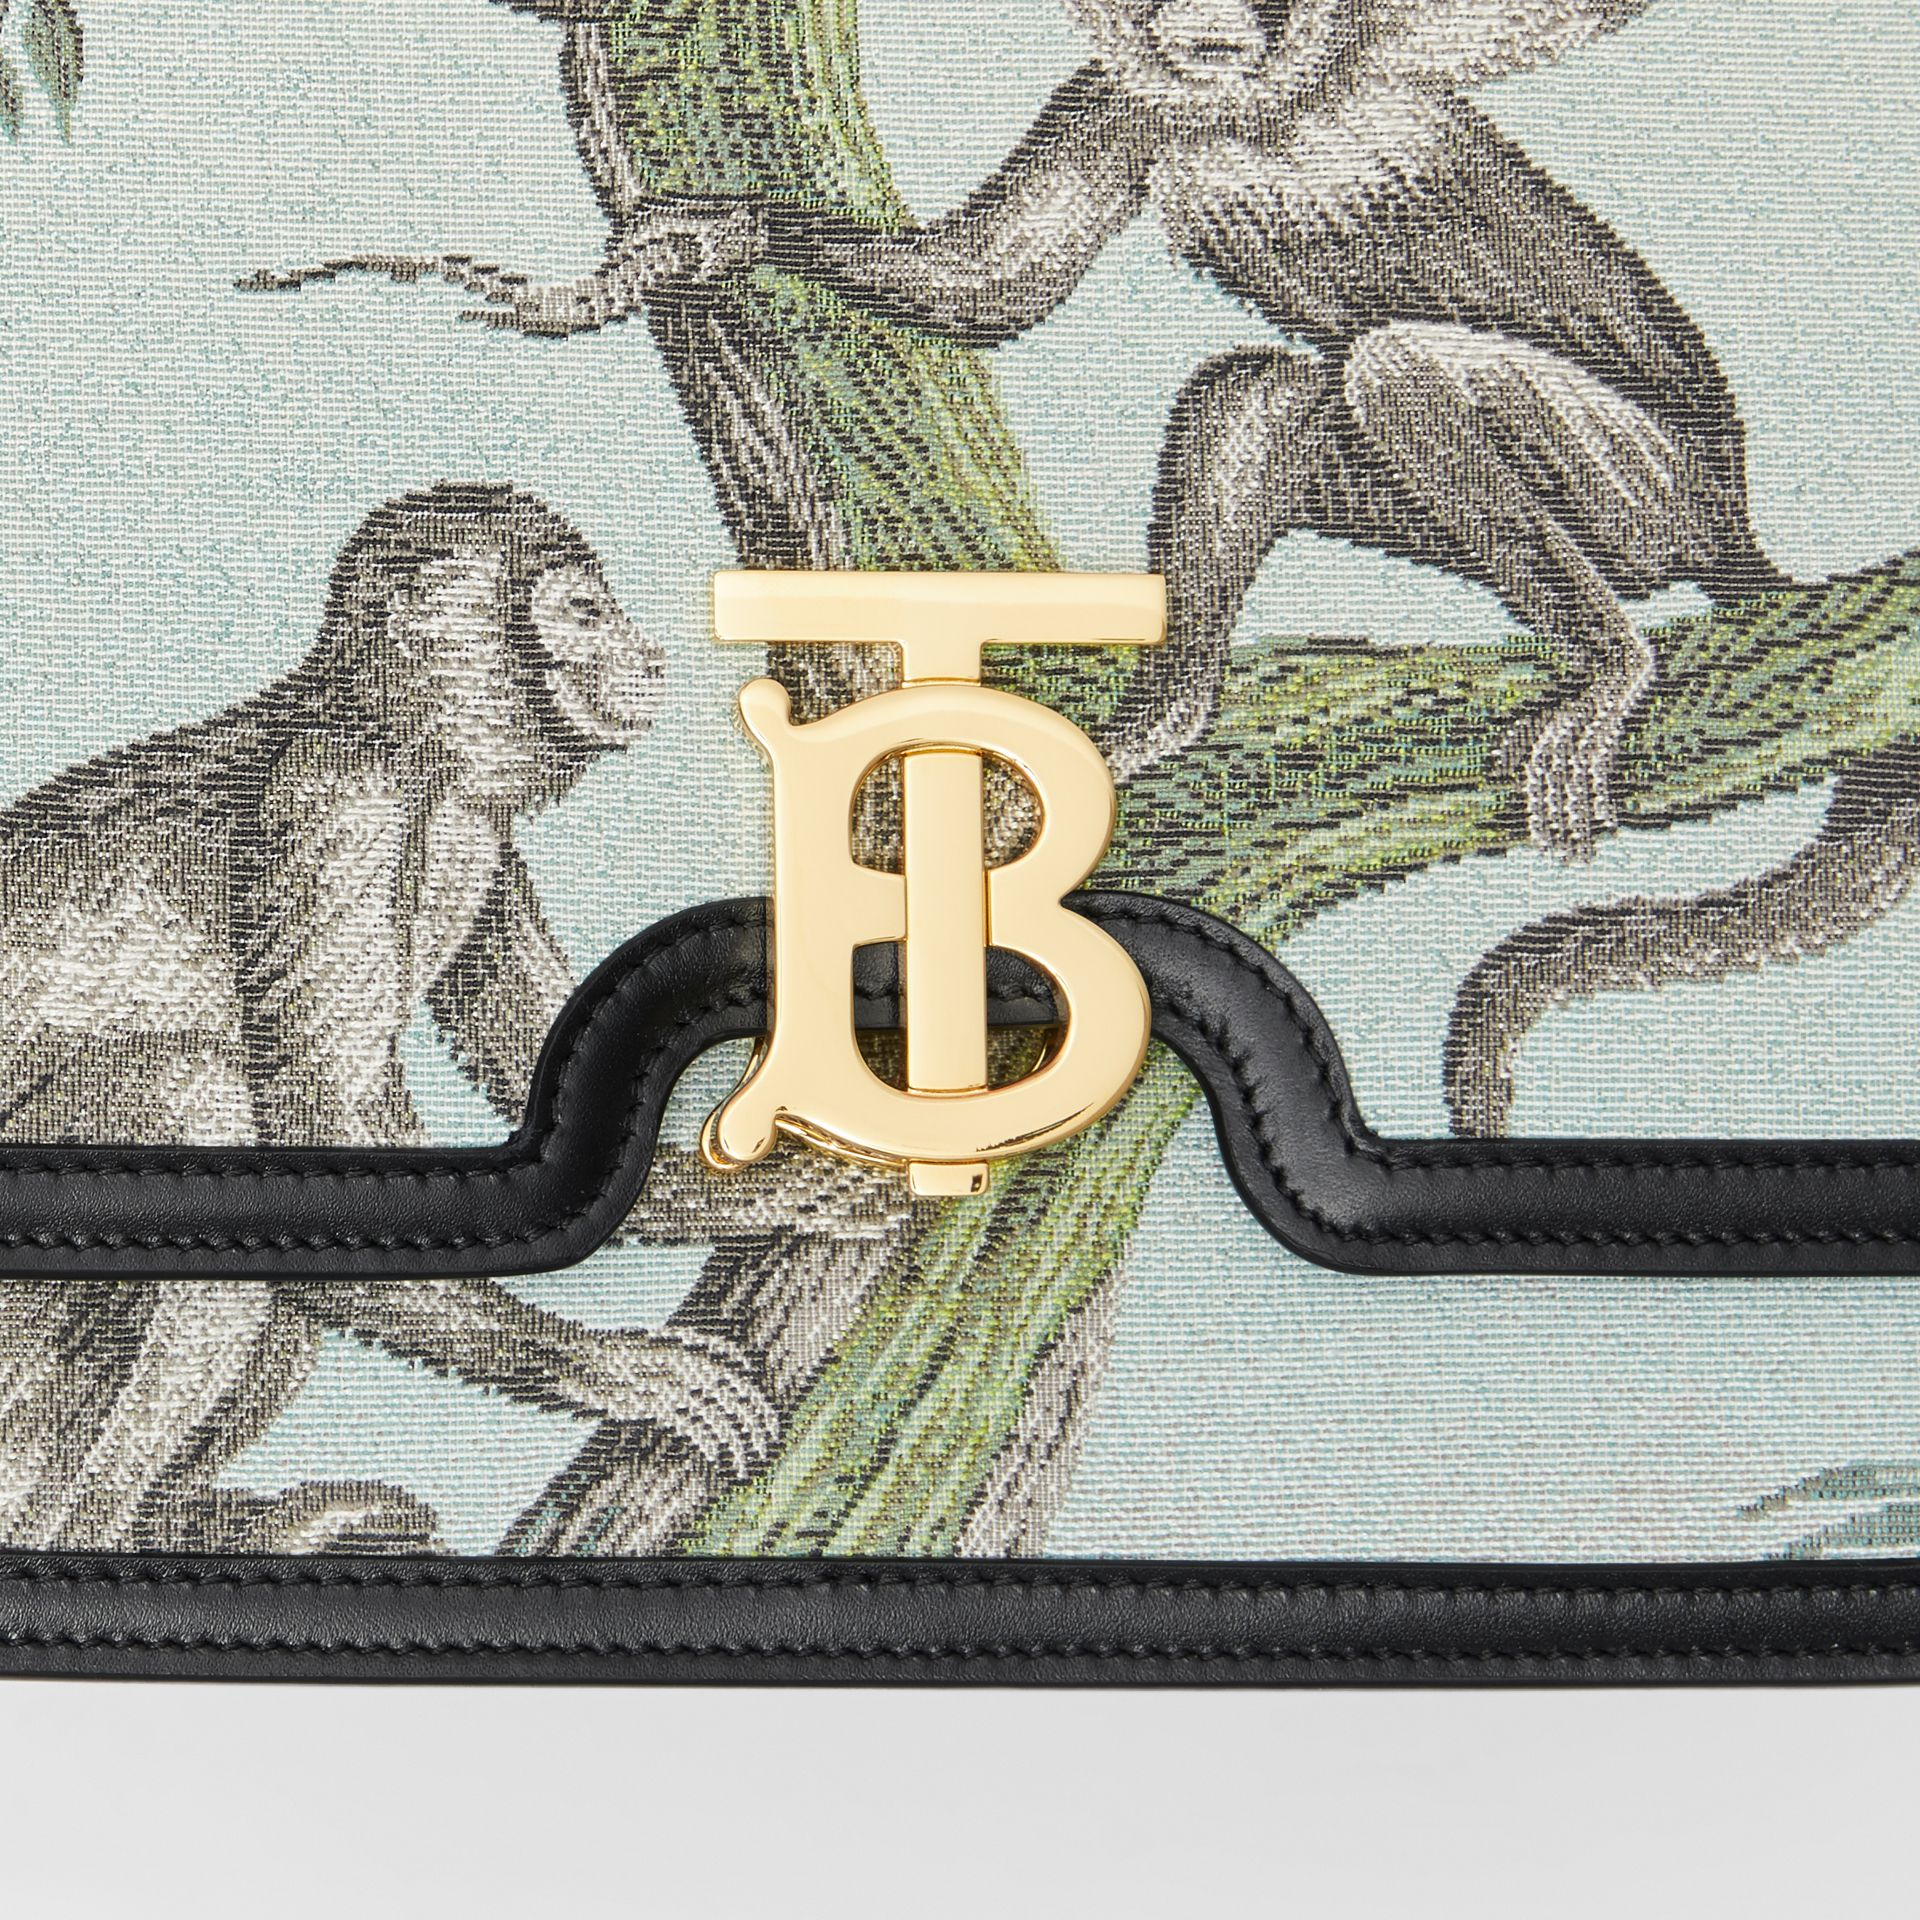 Medium Monkey Jacquard and Leather TB Bag in Black/opal Green - Women | Burberry - gallery image 1